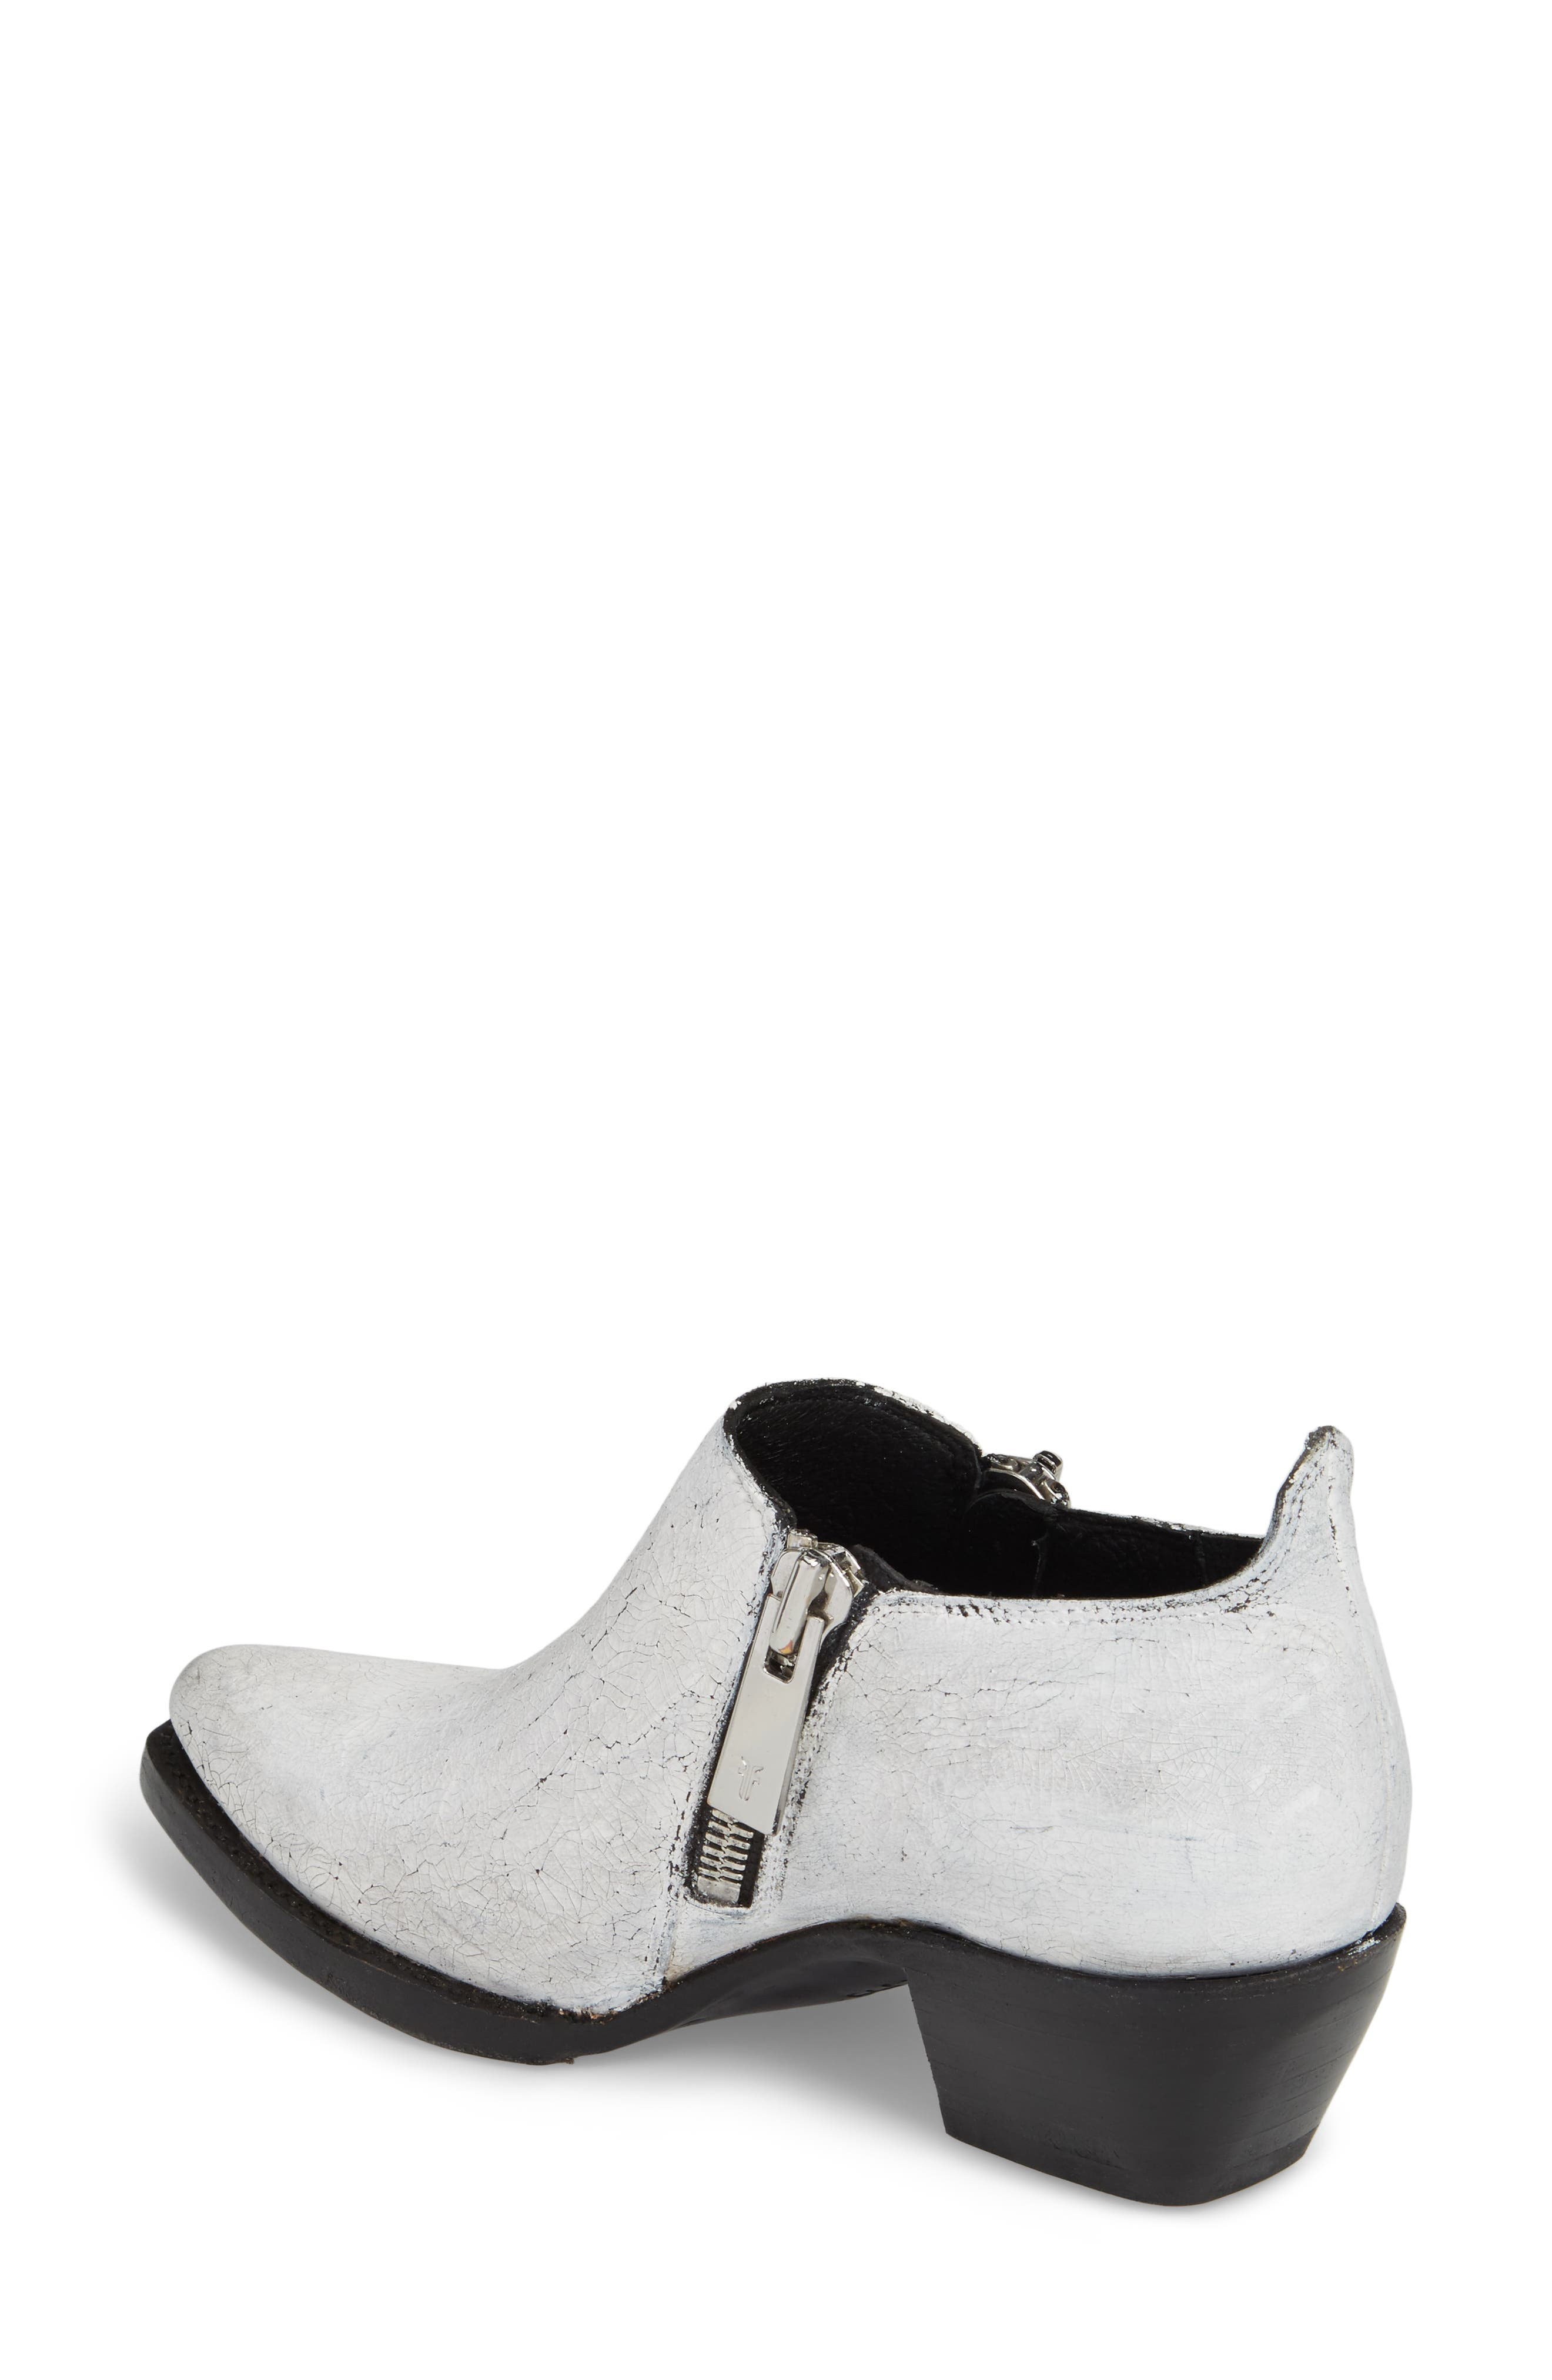 FRYE, Sacha Double Zip Bootie, Alternate thumbnail 2, color, WHITE